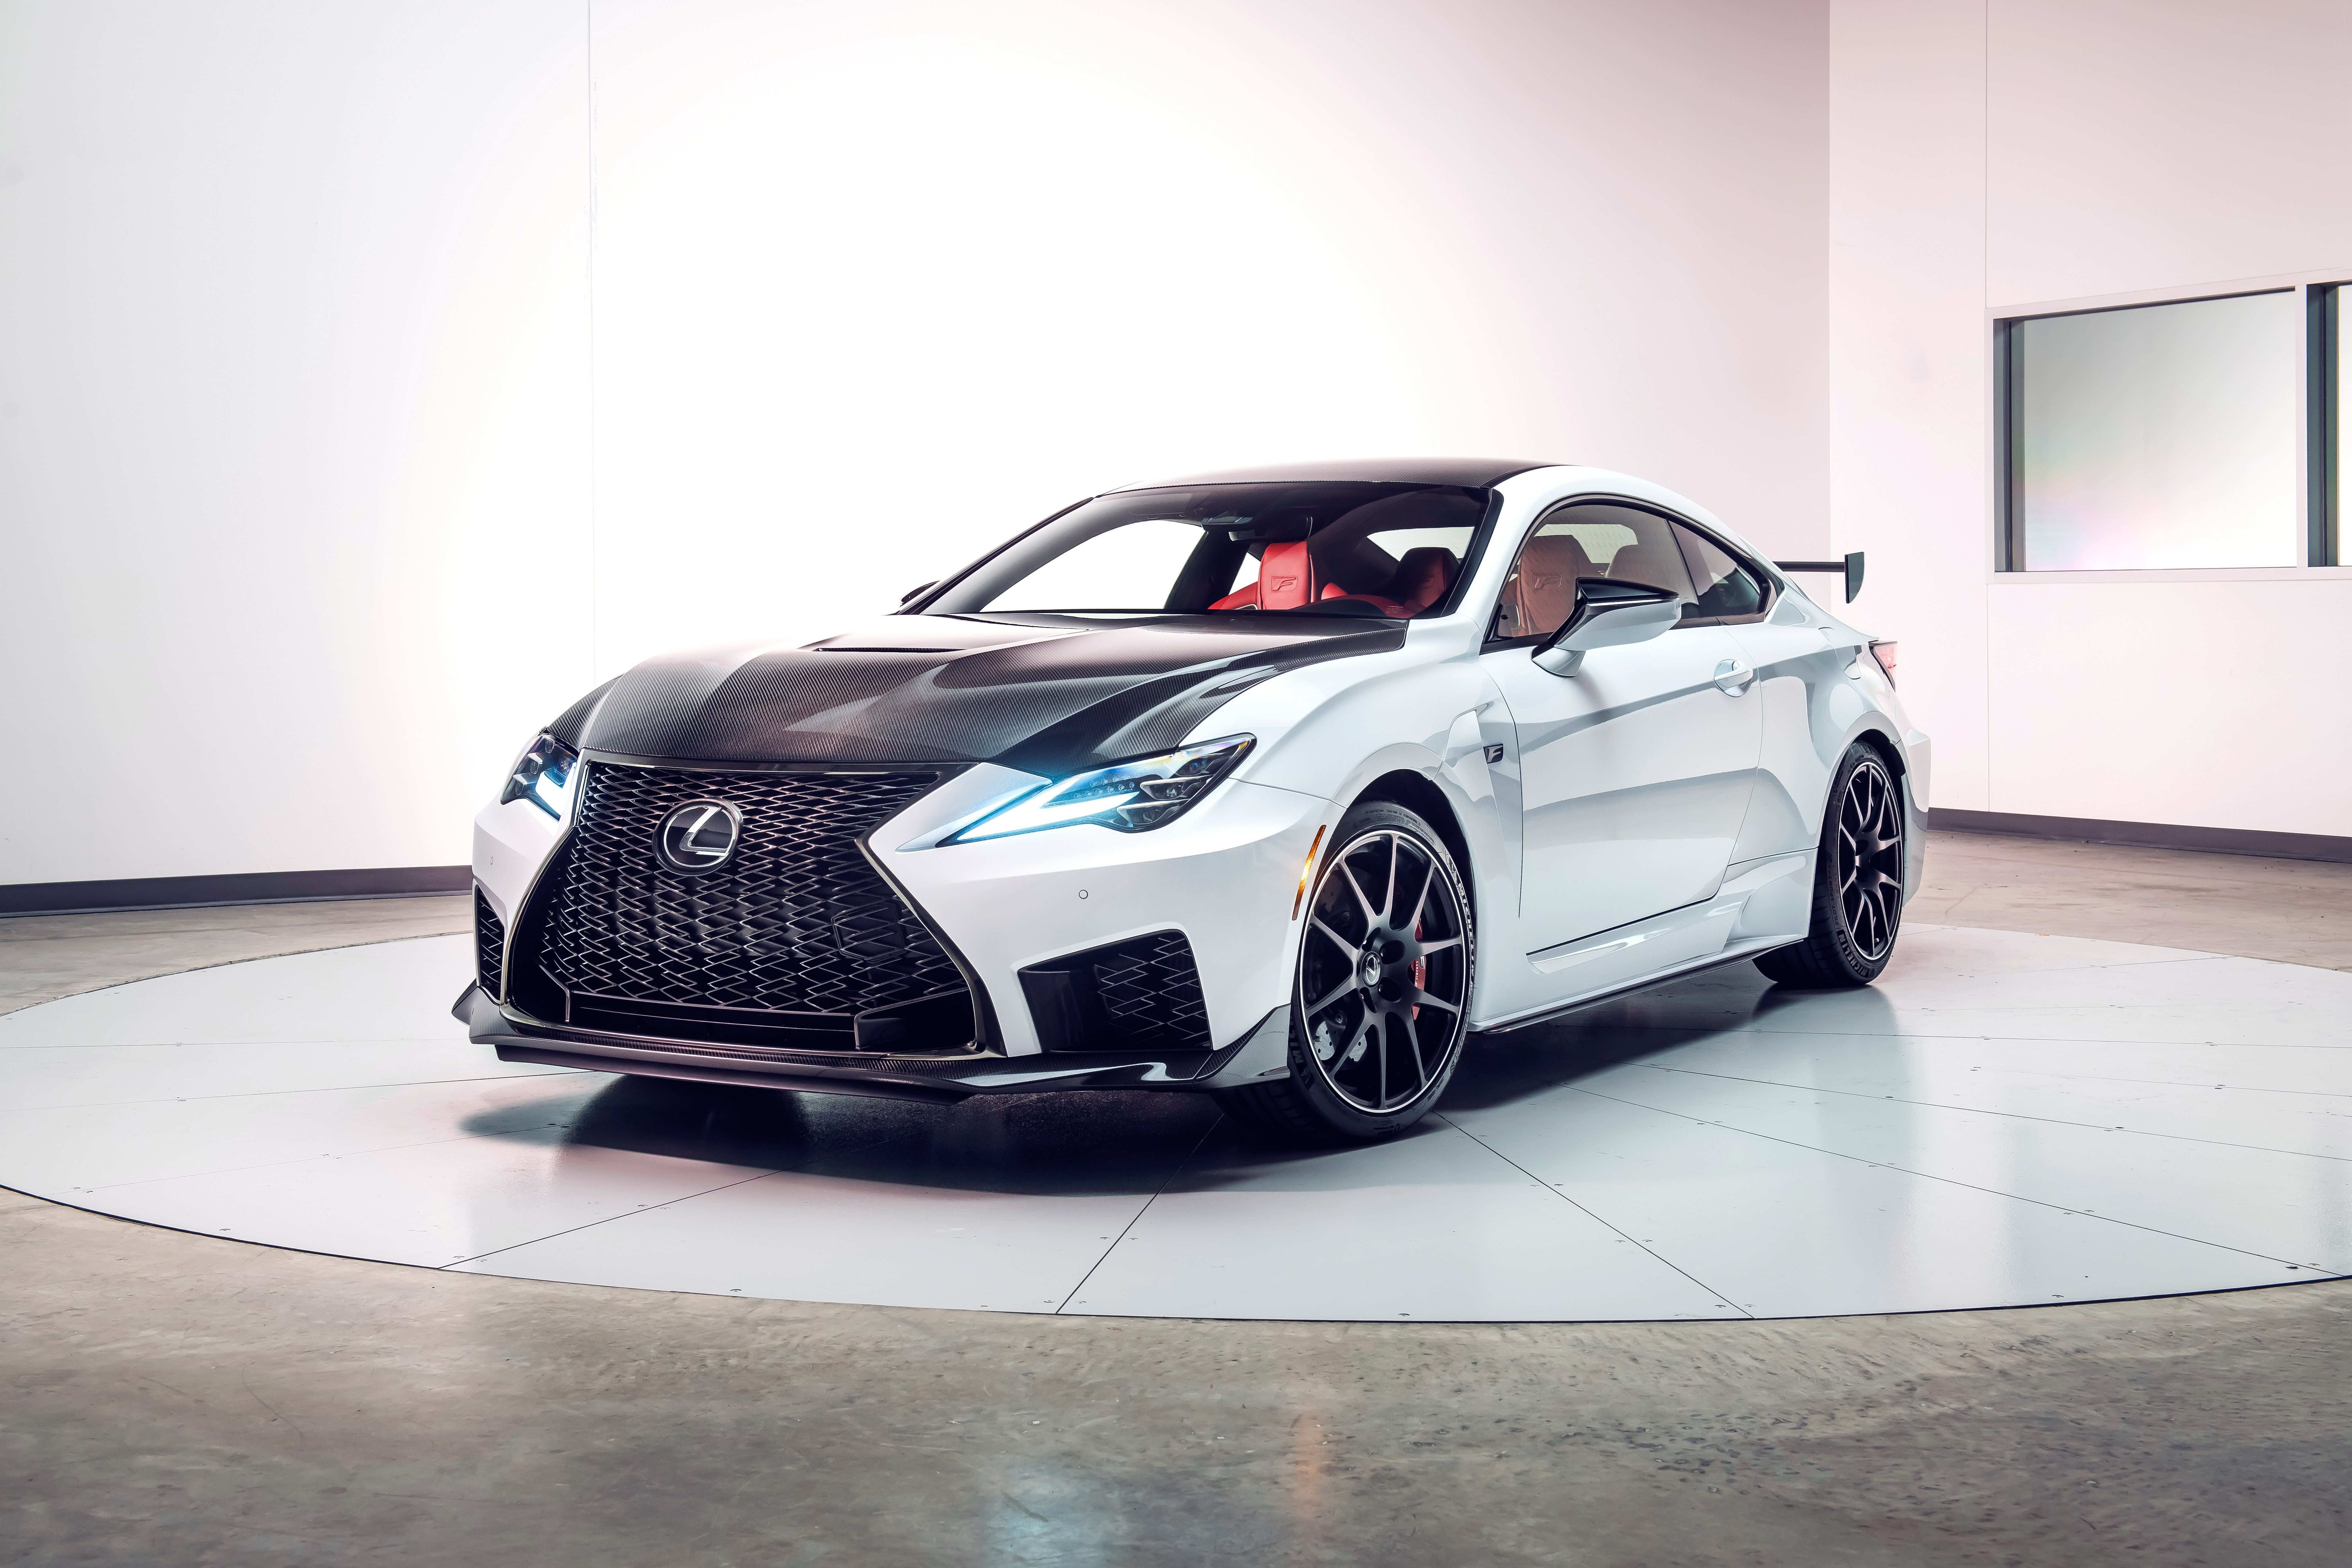 35 A 2020 Lexus Rc F Track Edition Price And Review